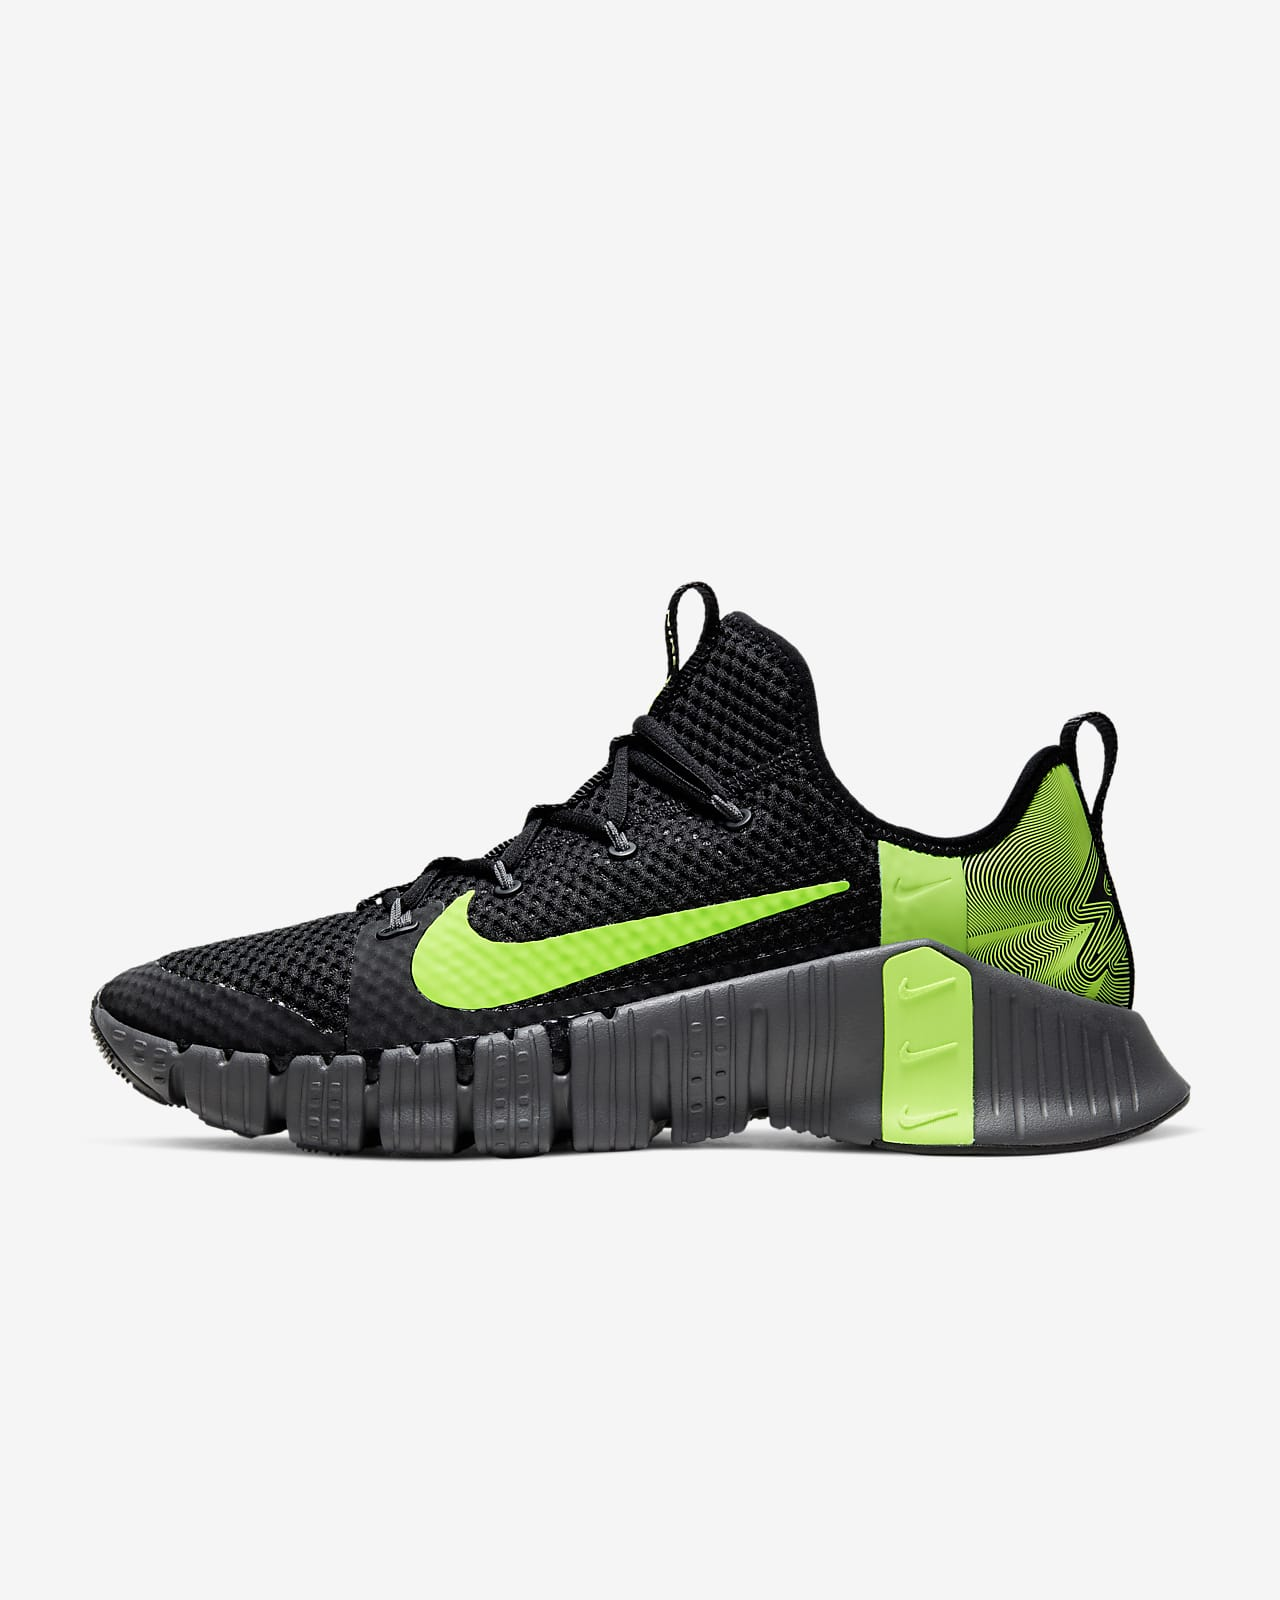 Nike Free Metcon 3 RW Men's Training Shoe